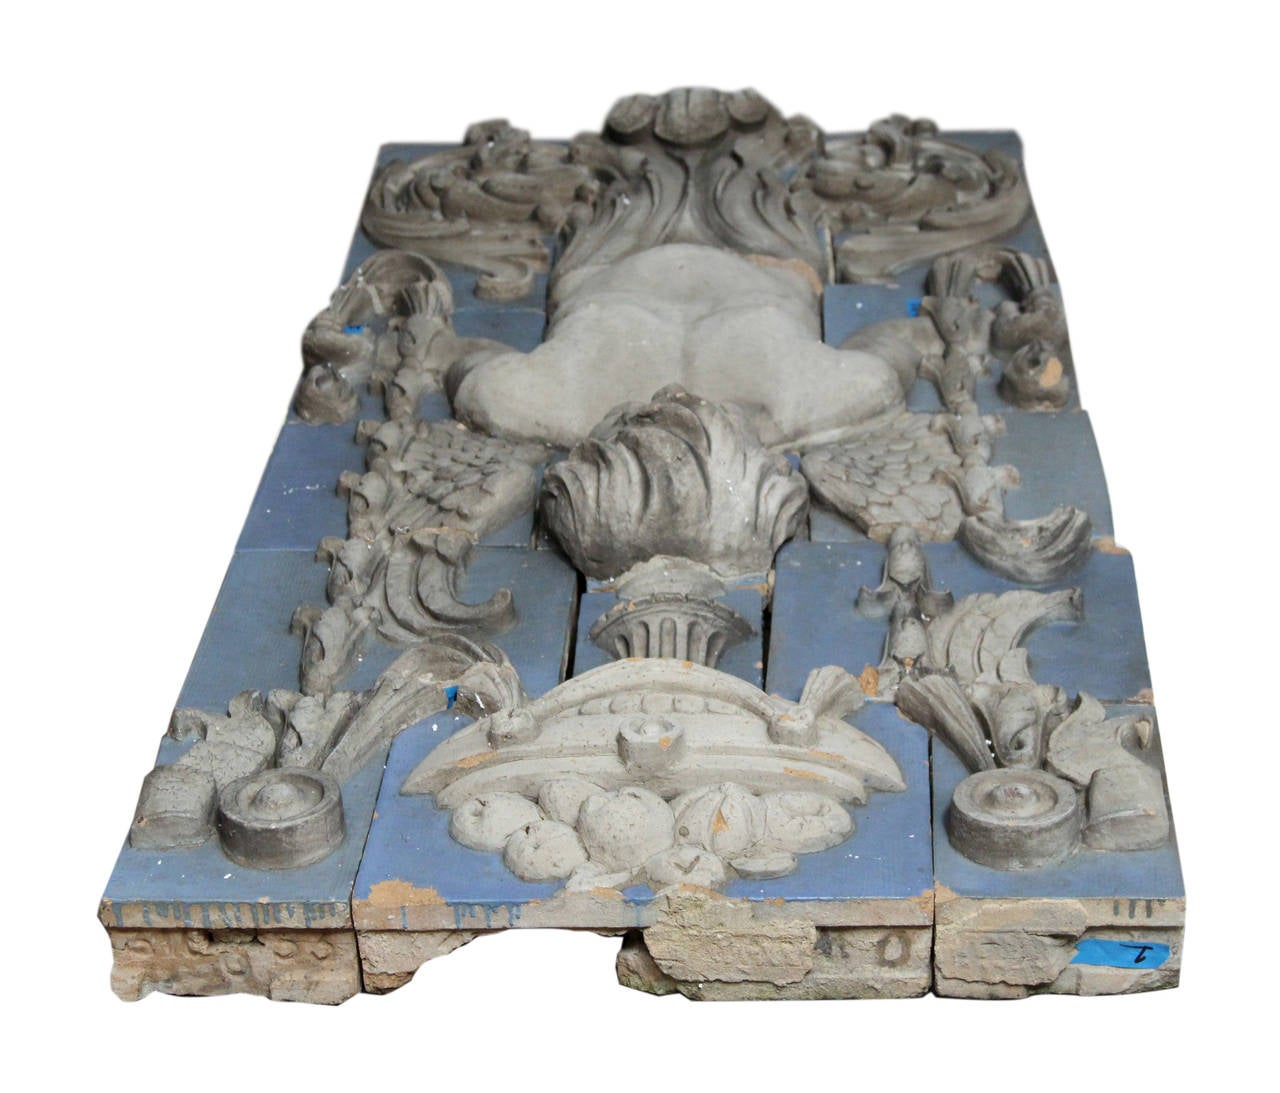 1918 Polychrome Terracotta Cherub Frieze from the Southern Hotel in Baltimore For Sale 1